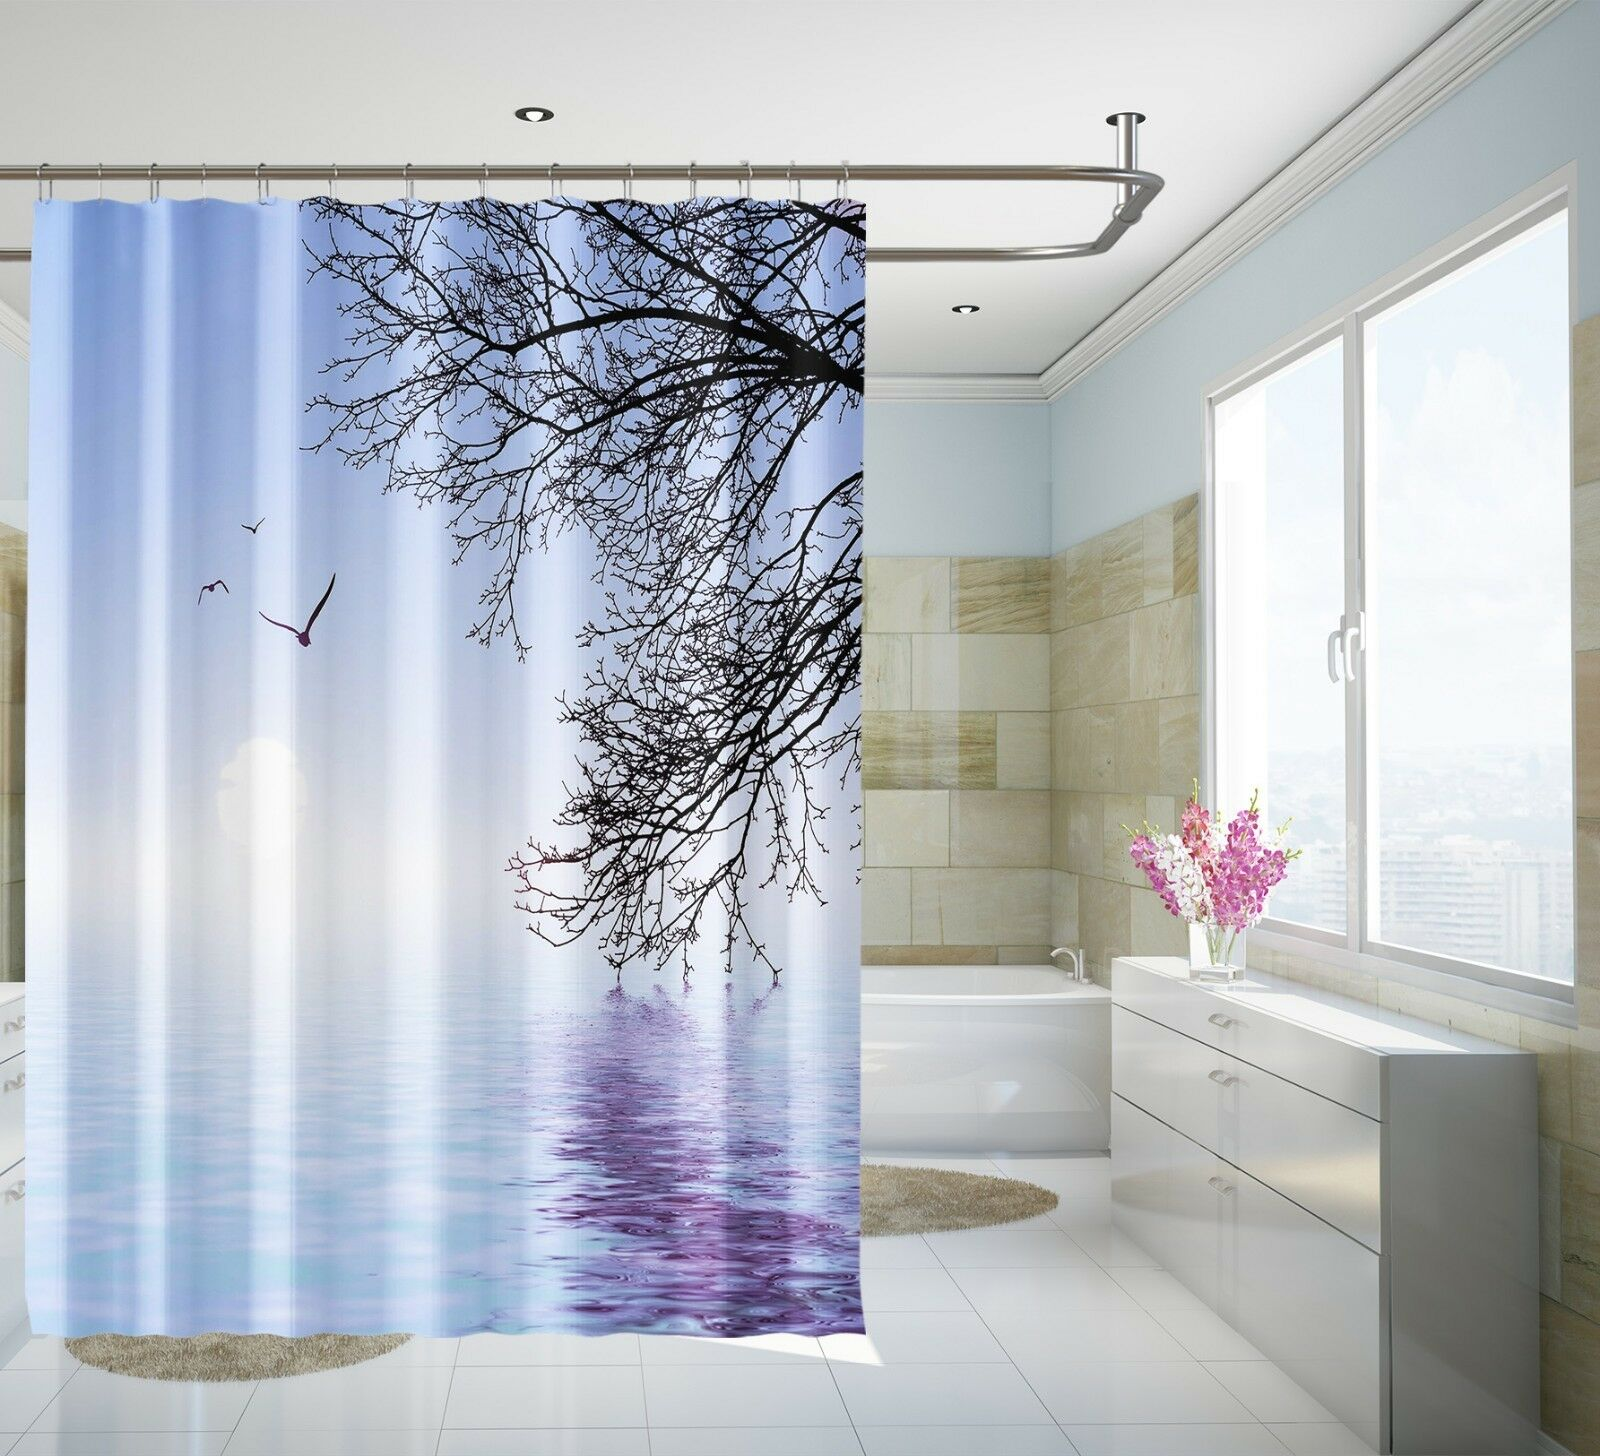 3D Tree Lake 5242 Shower Curtain Waterproof Fiber Bathroom Home Windows Toilet